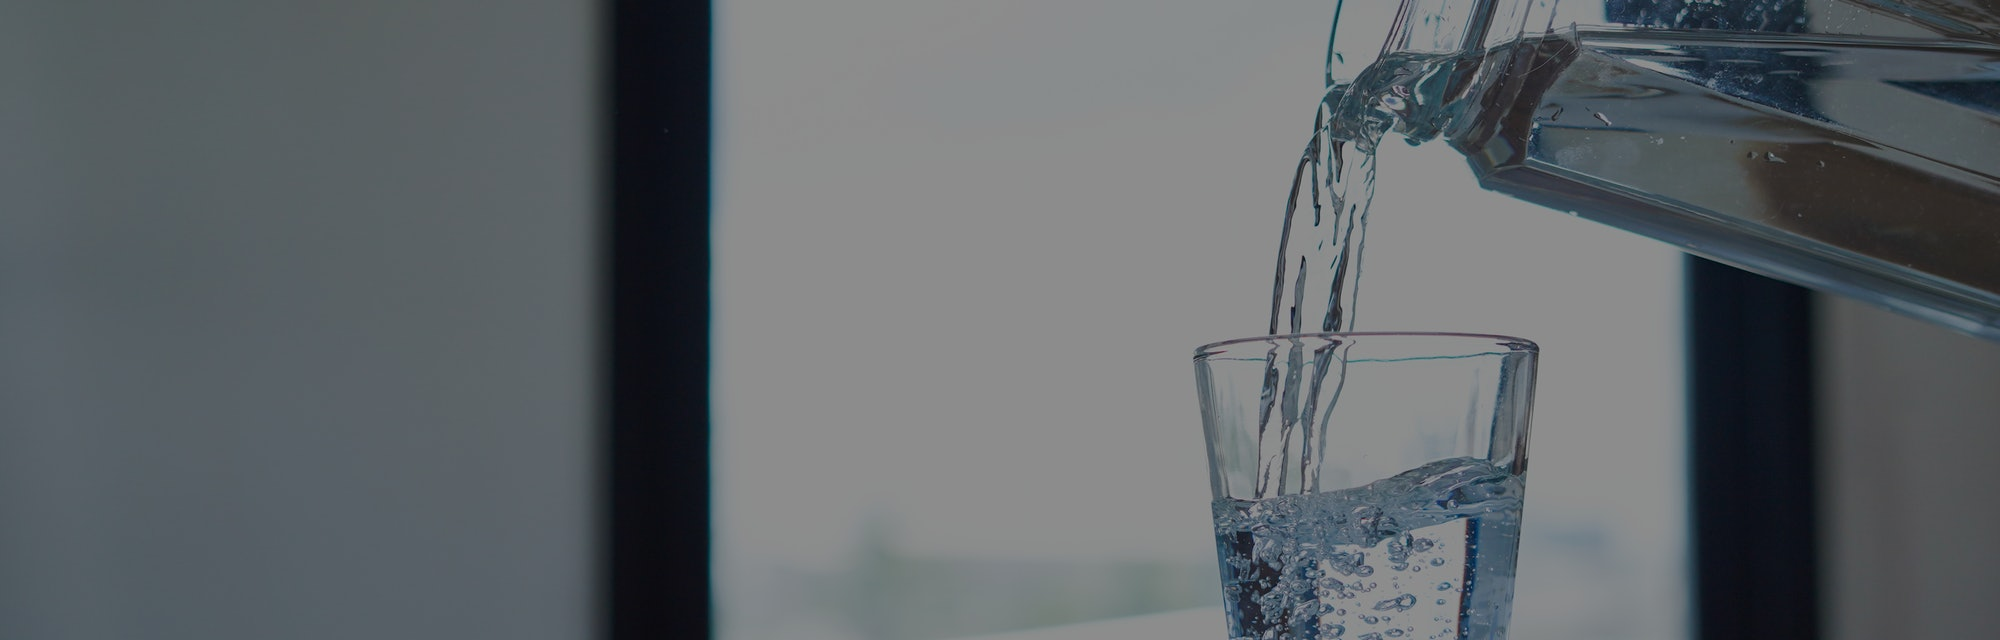 Woman hand holding jar of water and pouring water into a glass.